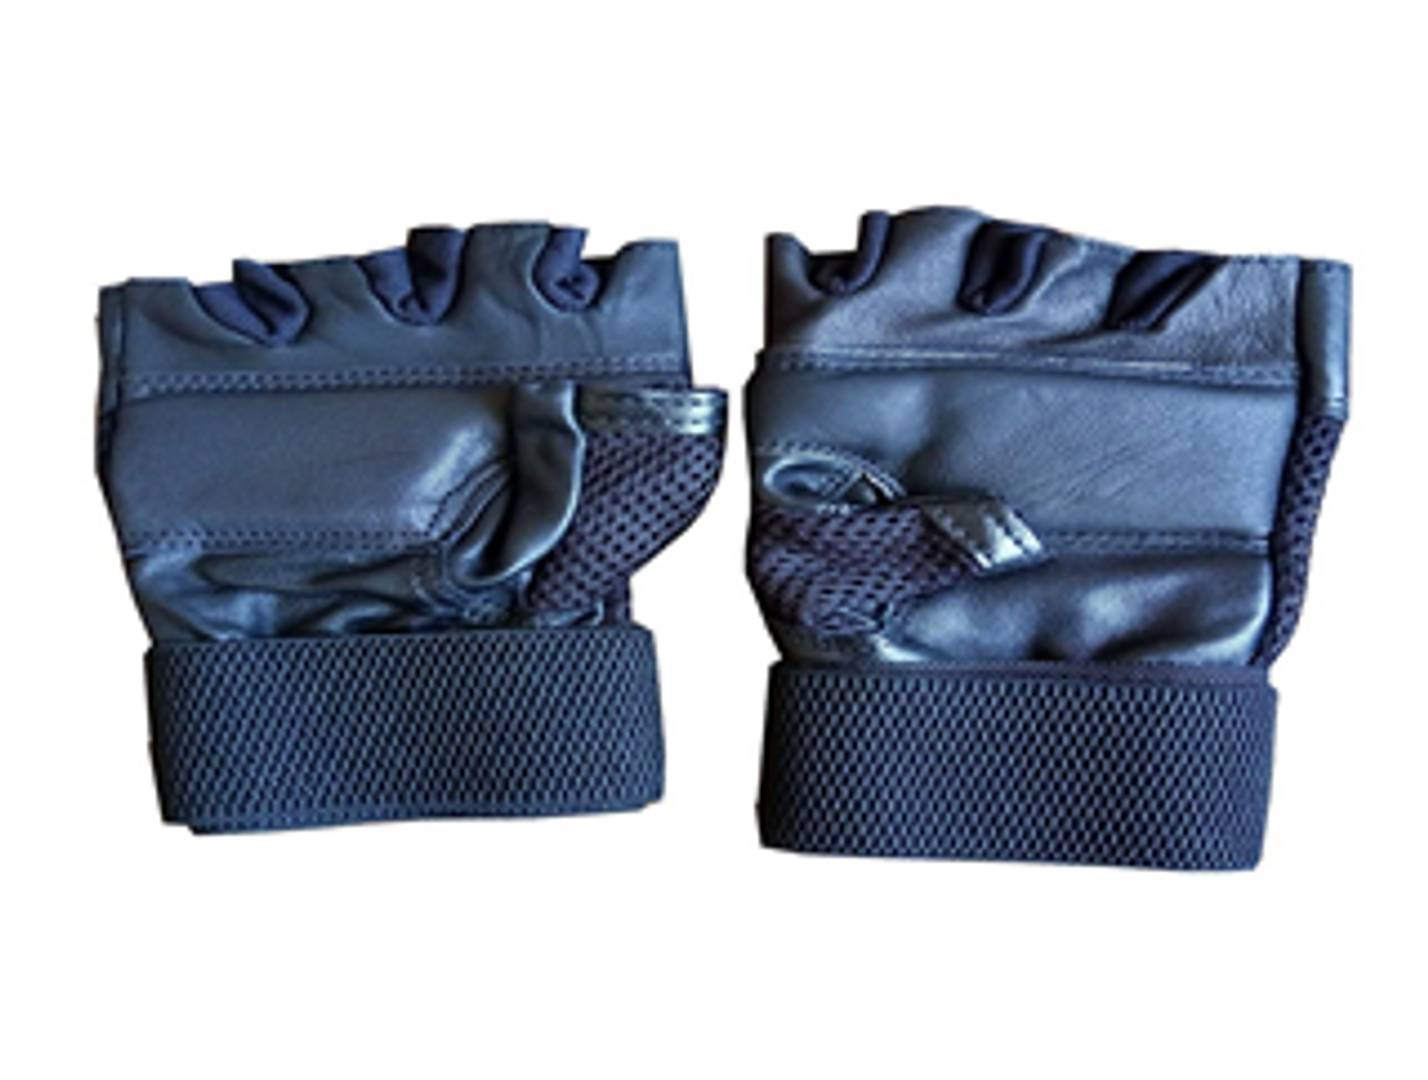 Useful Gym Gloves With Silicone Gel Padded Gloves For Gym Workout